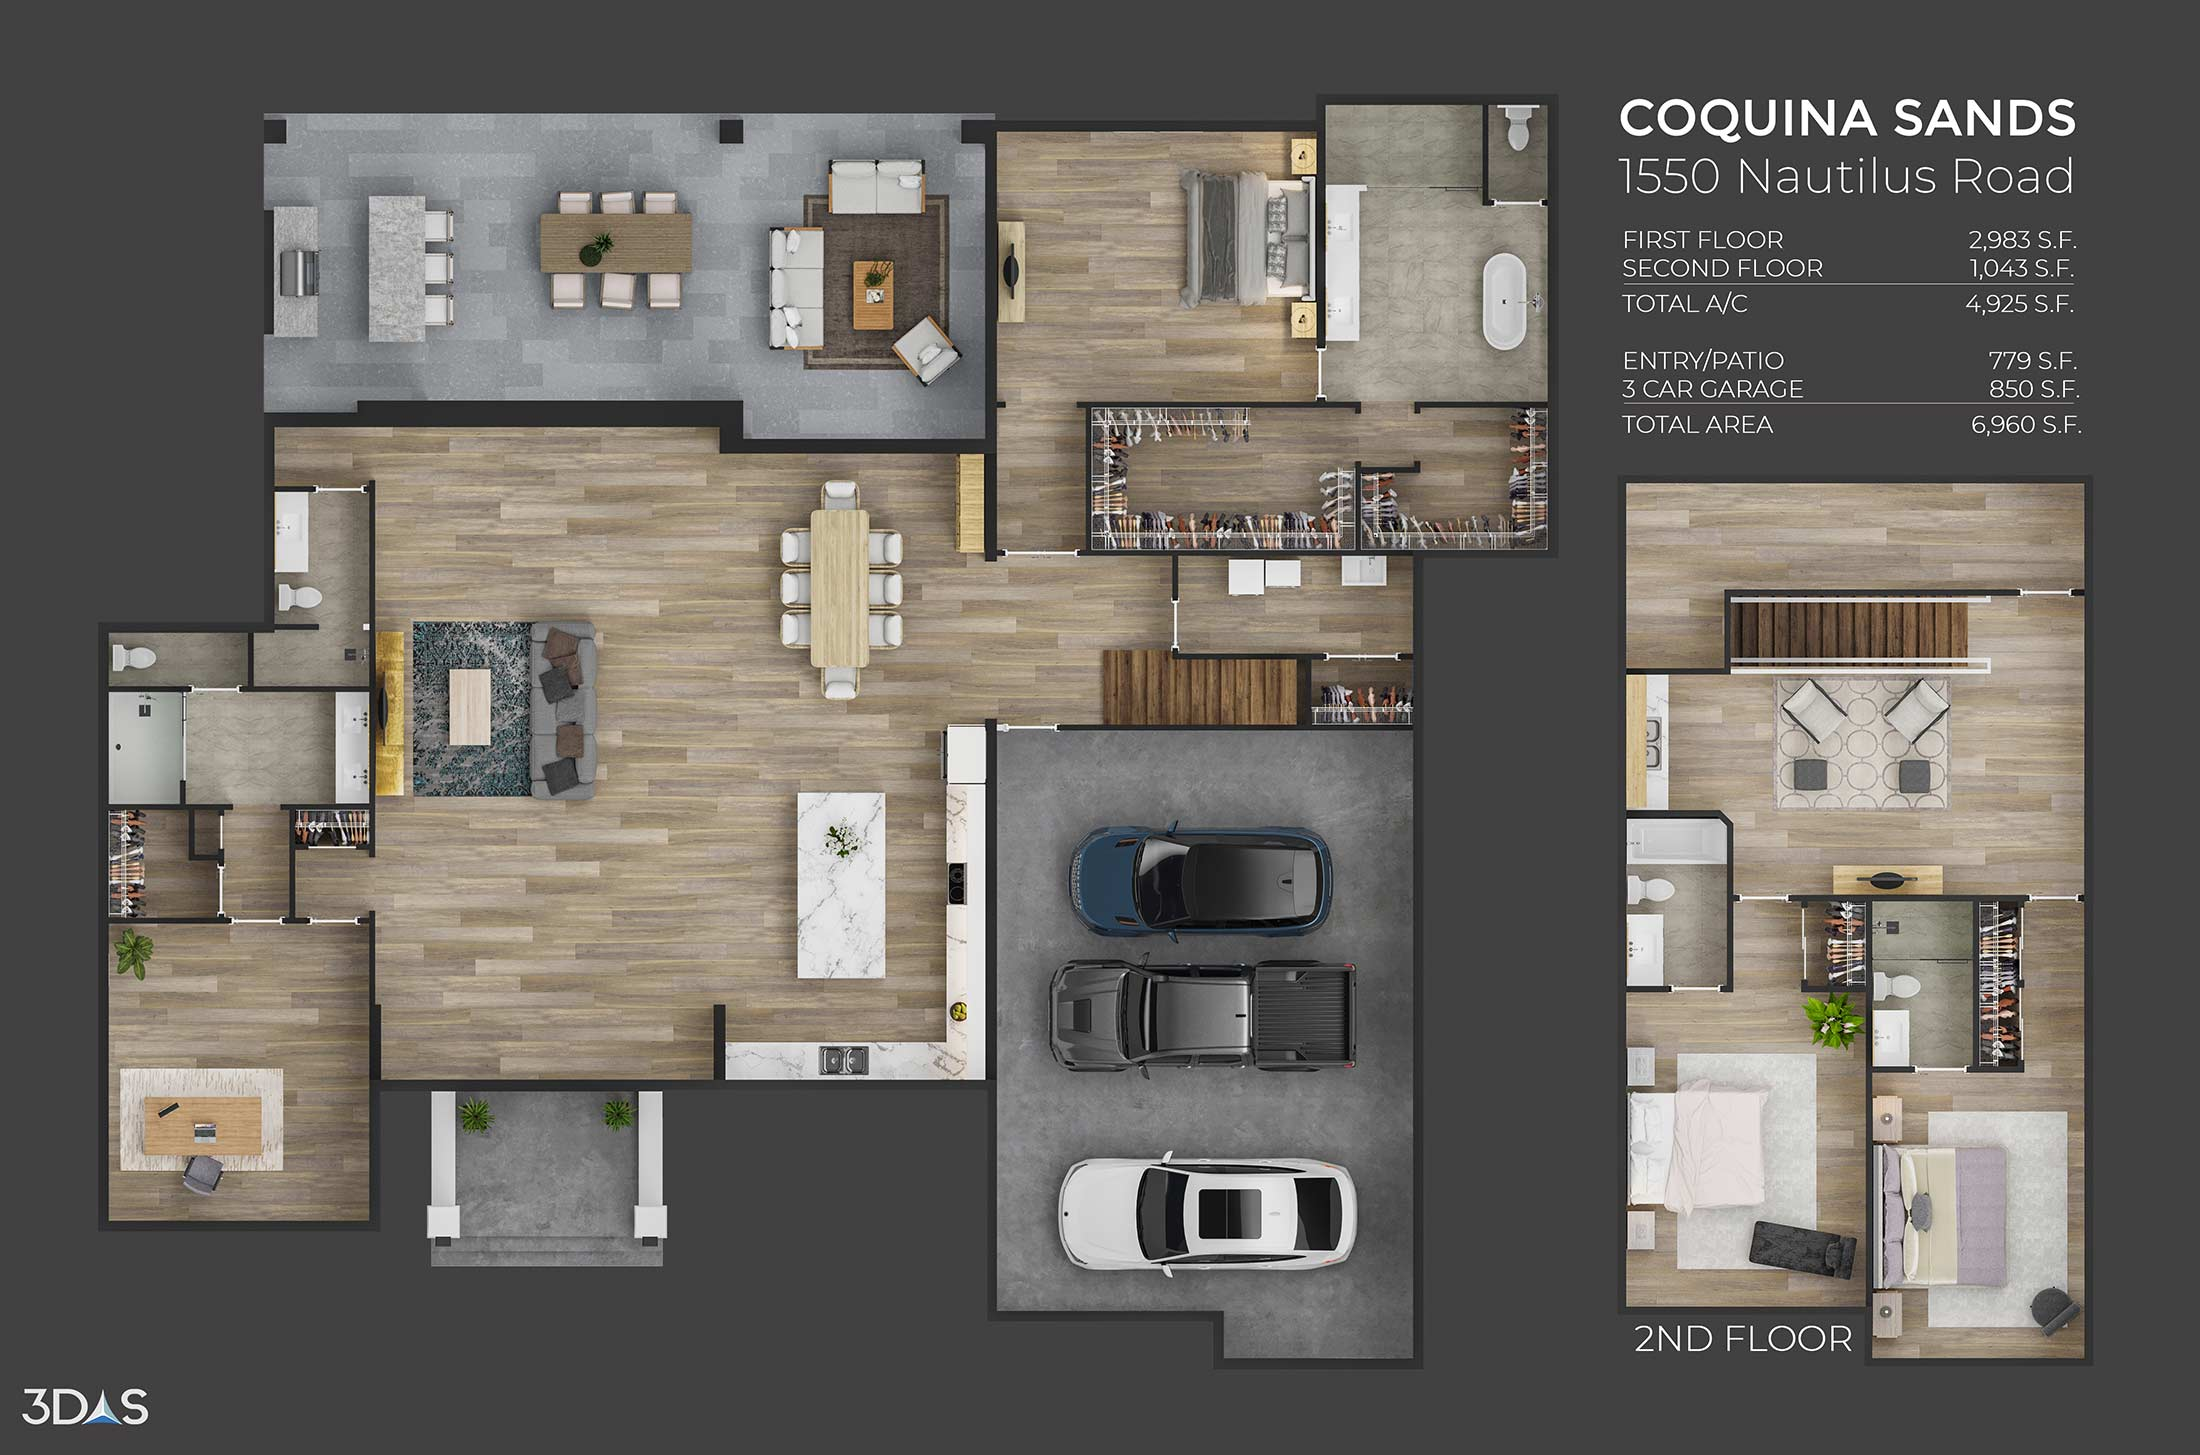 1st and 2nd story 3D floorplan for a residential home in the Coquina Sands community. 1550 Nautilus is located in Naples, Florida.